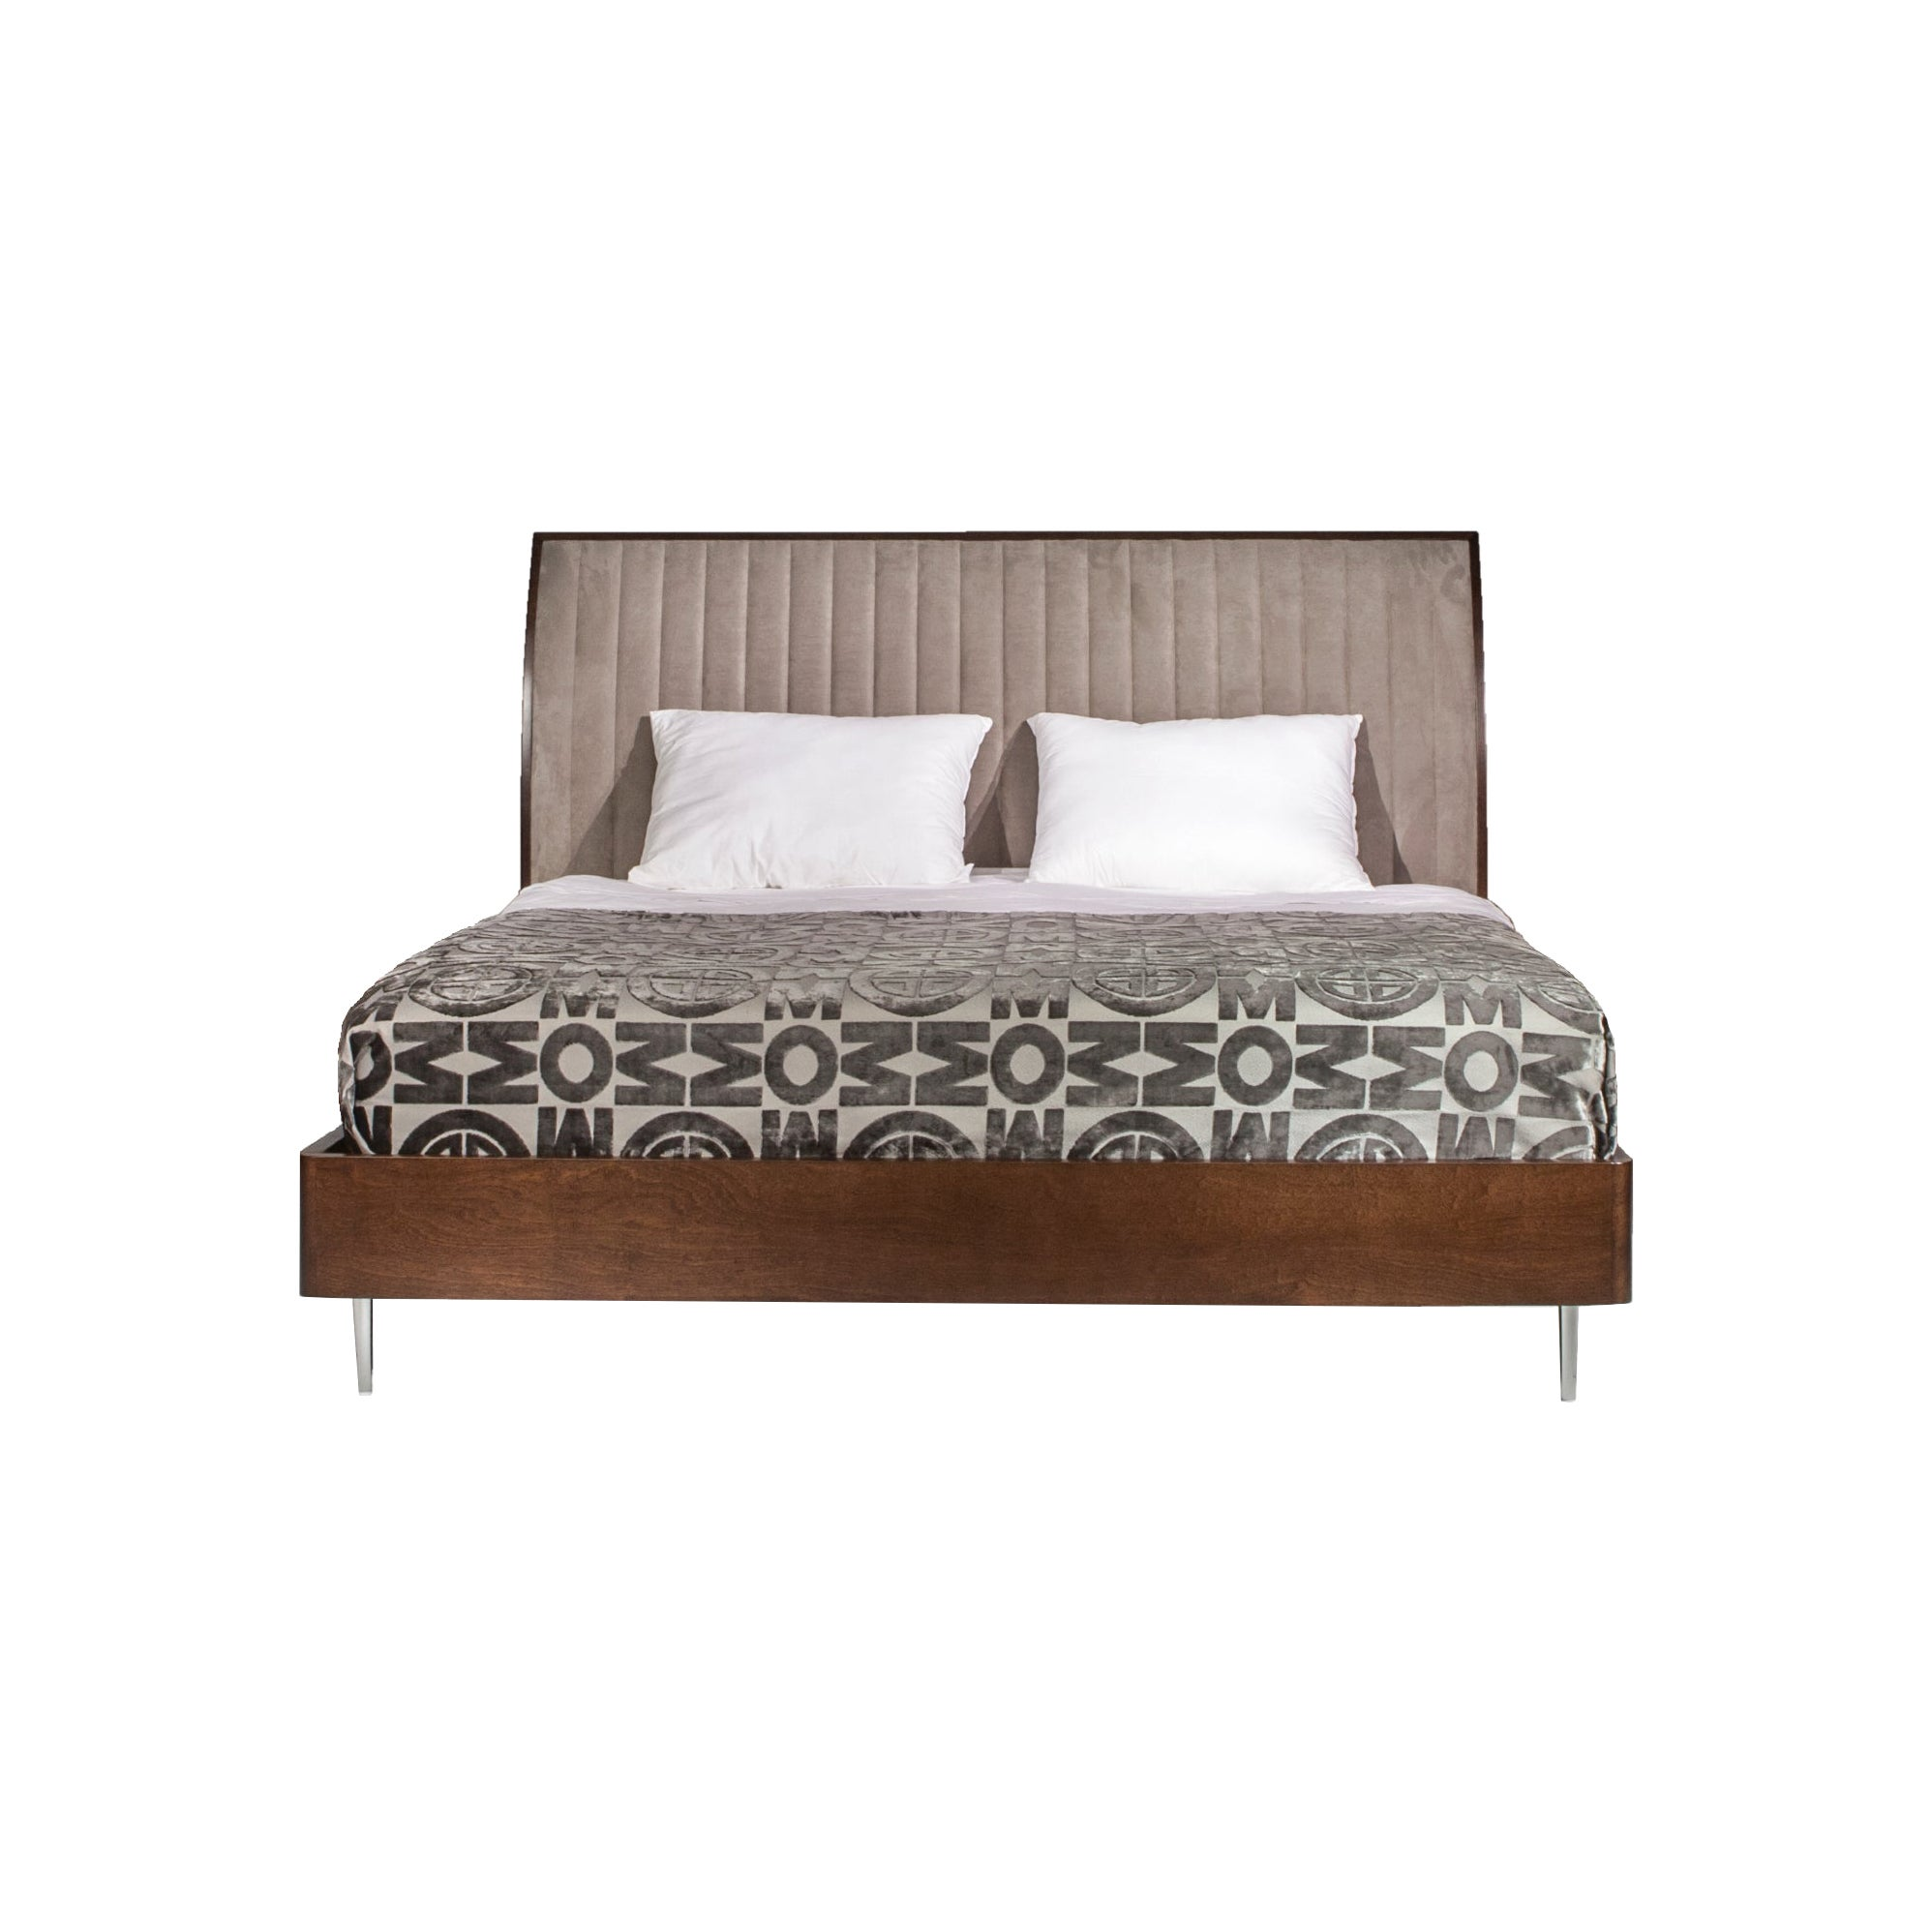 Versa Bed, Solid Walnut Wood Bed Frame with Upholstered Headboard